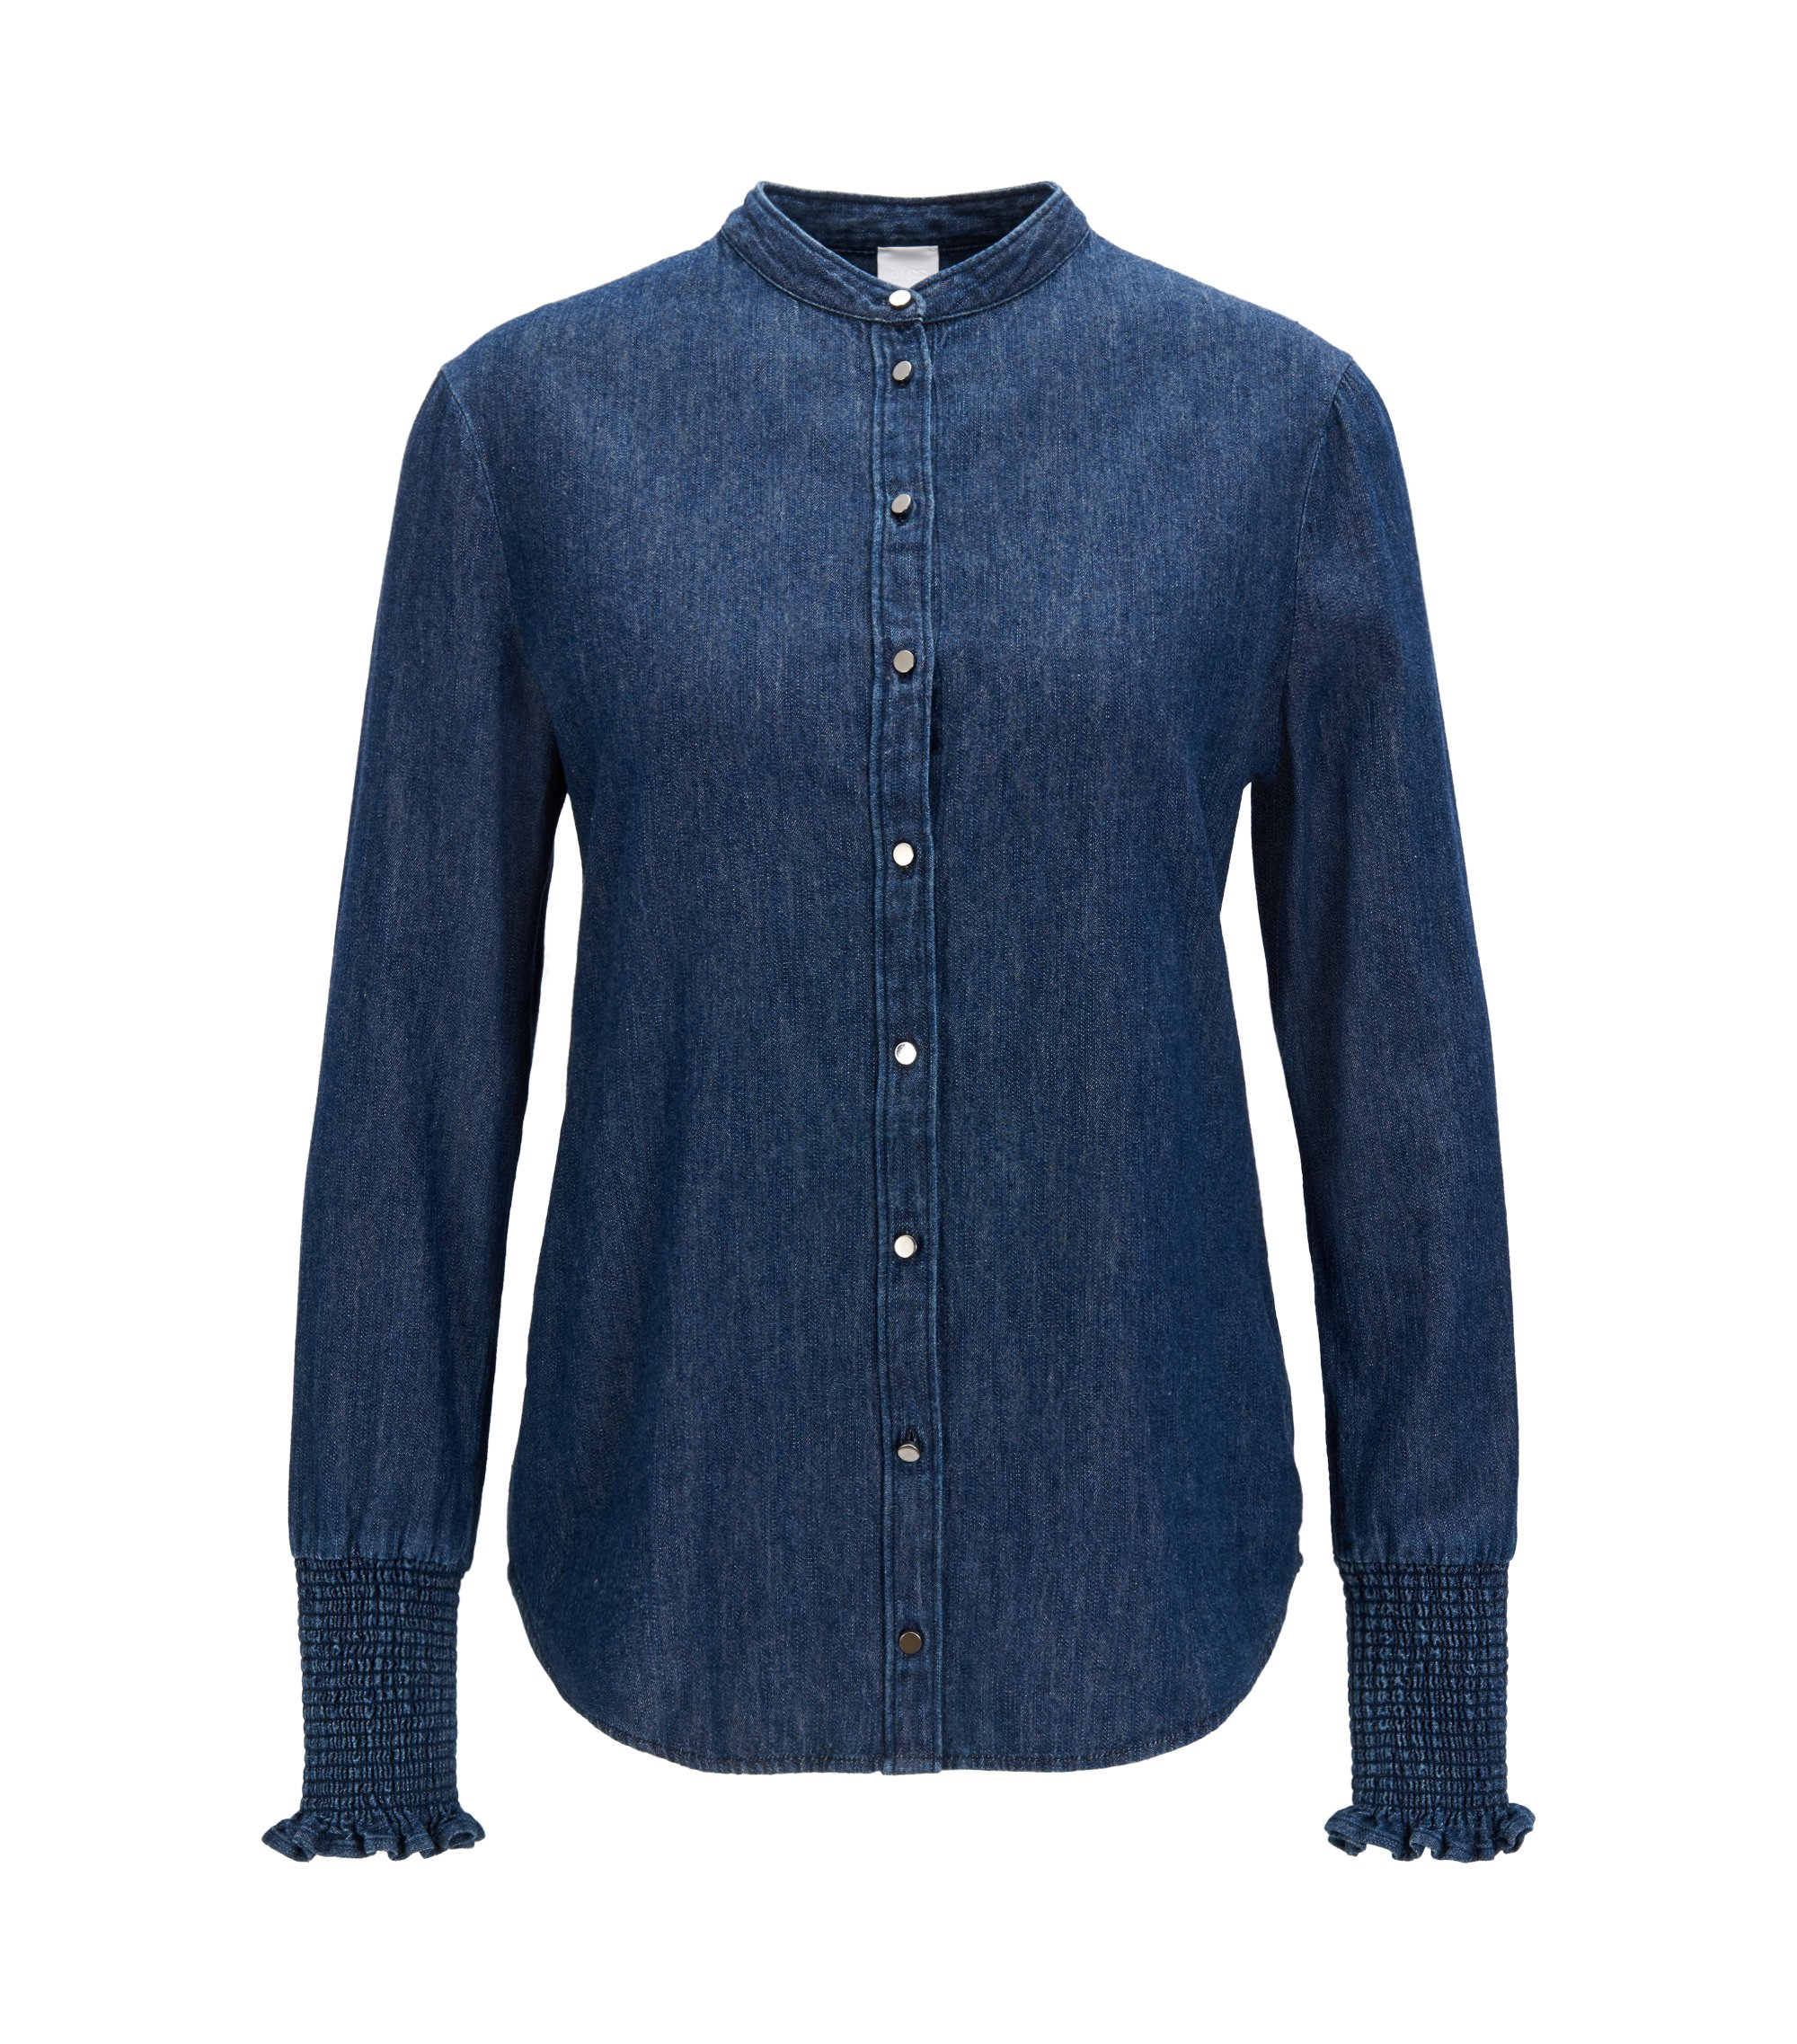 Camicia regular fit in denim con maniche con ricami a punto smock, Blu scuro